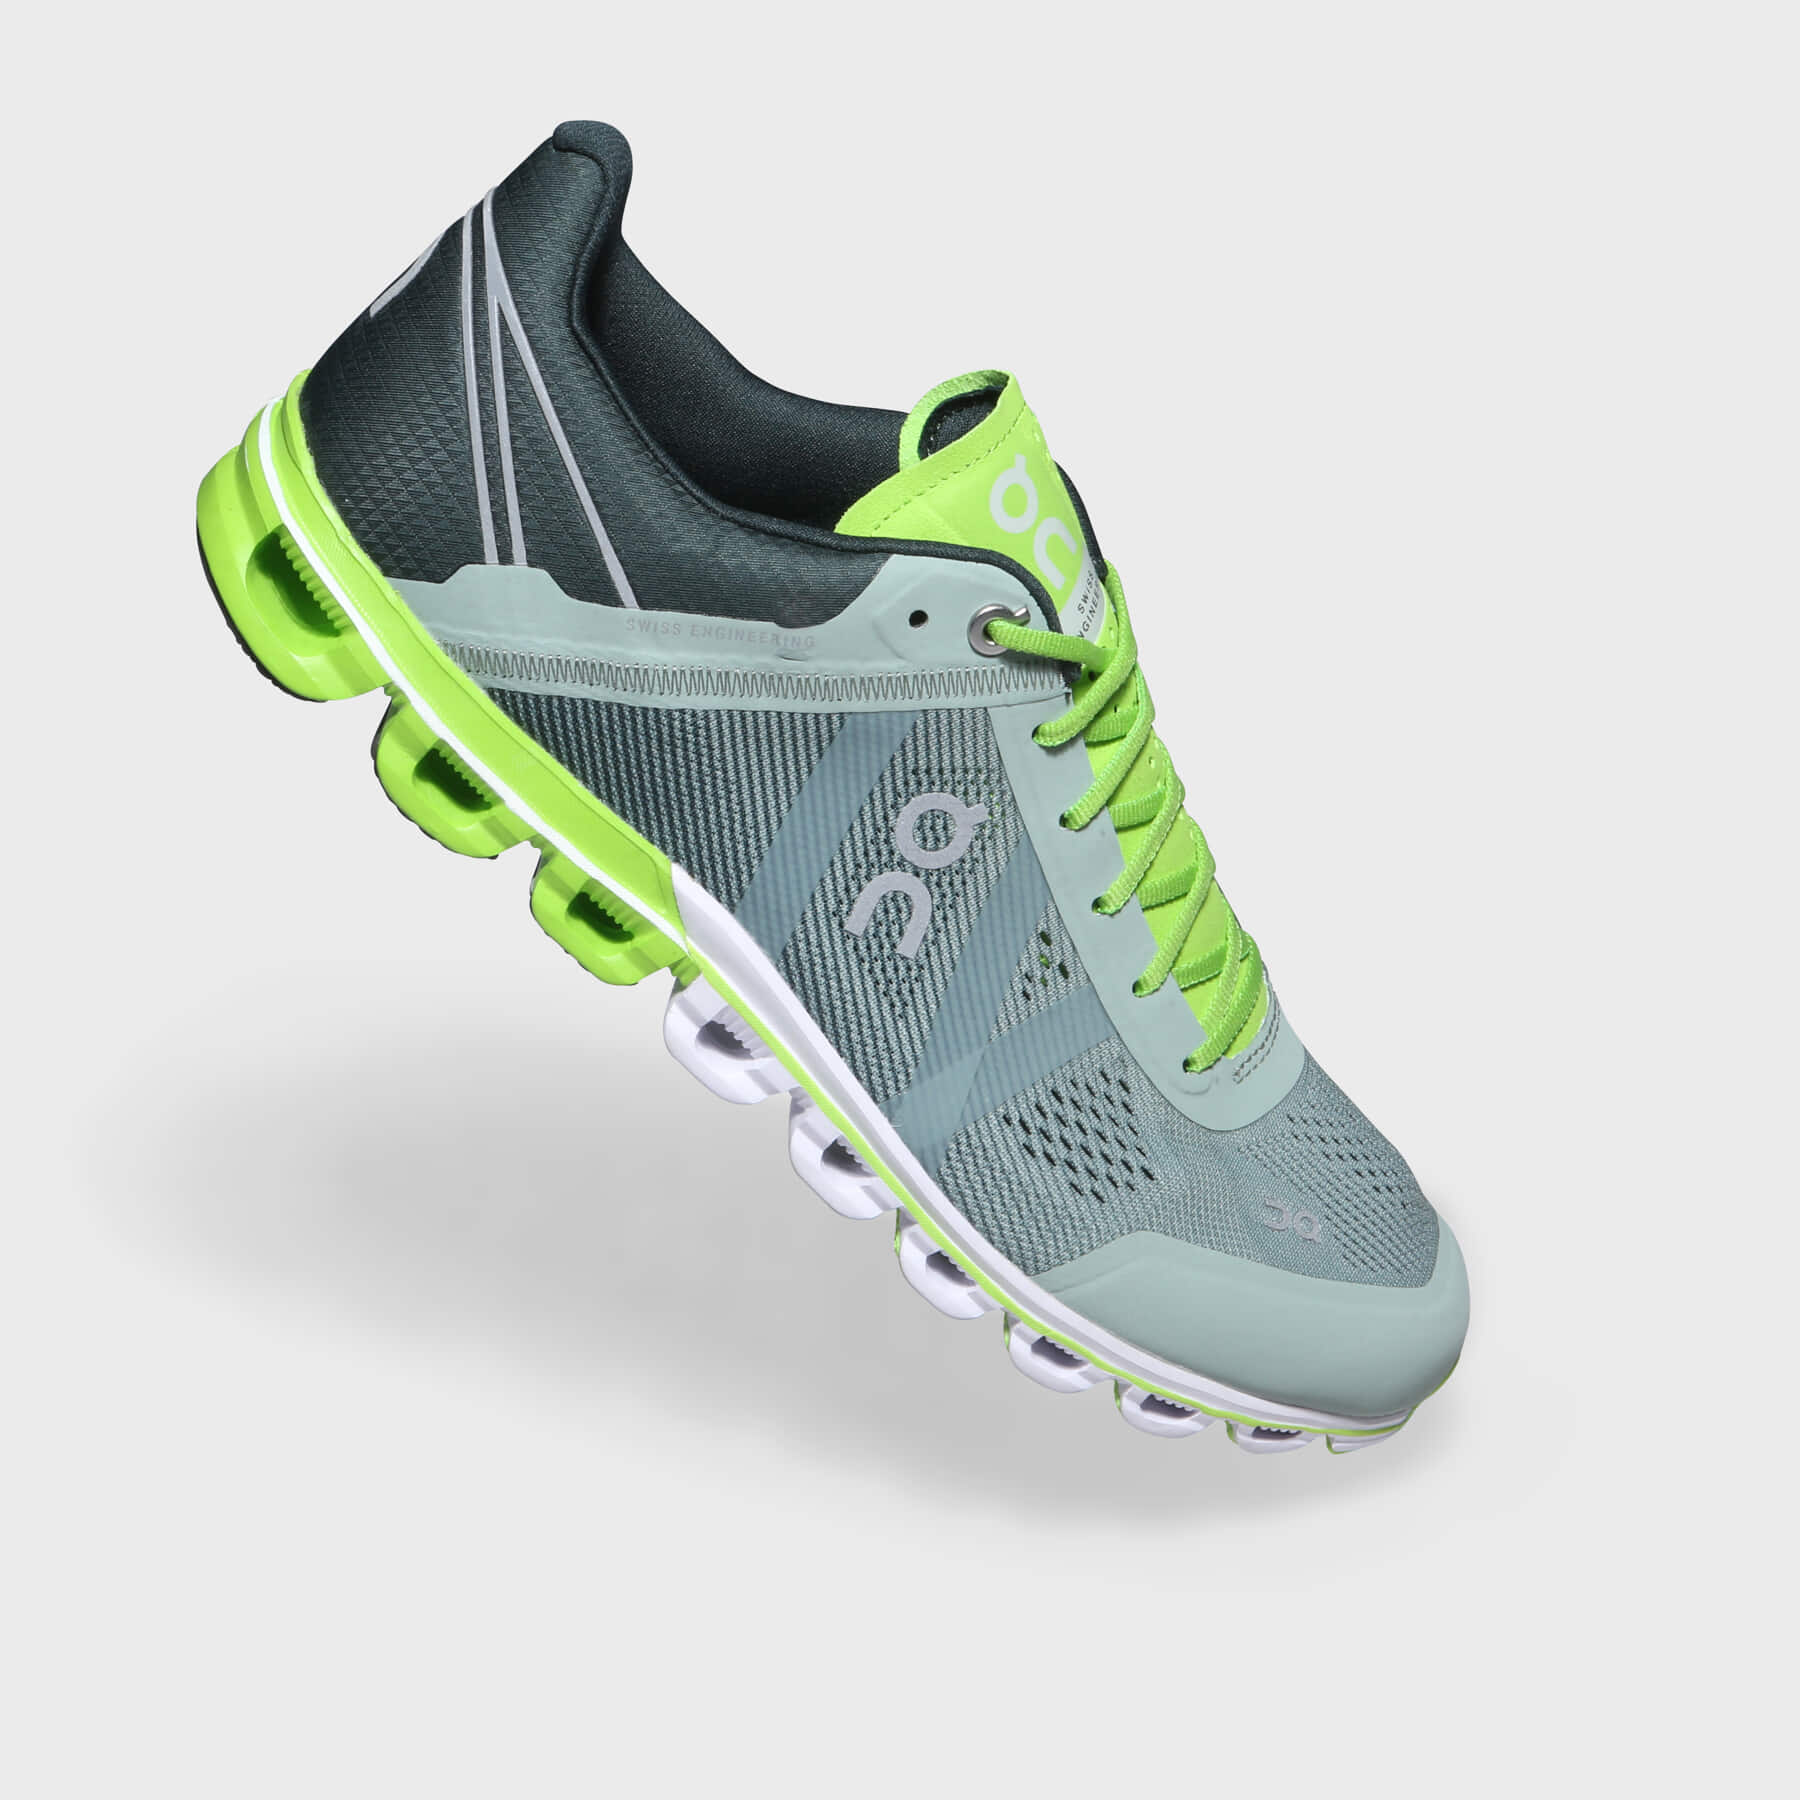 4c59793a7a Cloudflow. Lightweight and ultra-responsive performance running shoe.